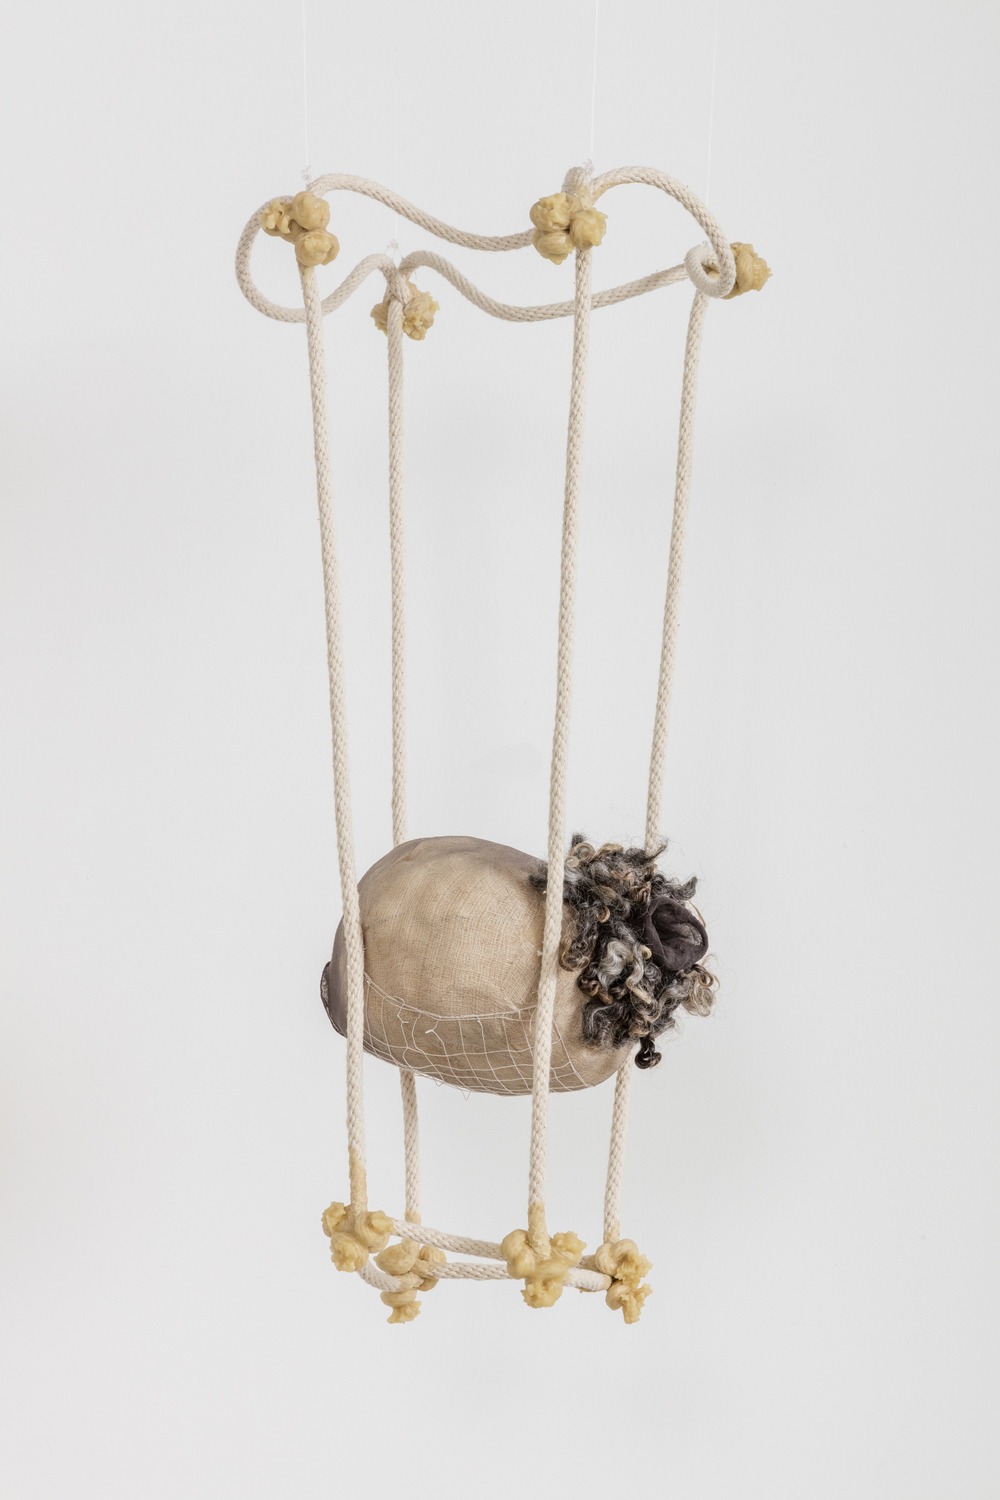 Tanya Aguiniga   Omission , 2016  Cotton rope, cotton thread, foam, gauze, nylon, wool, nylon and beeswax  24 x 10.5 x 8 inches